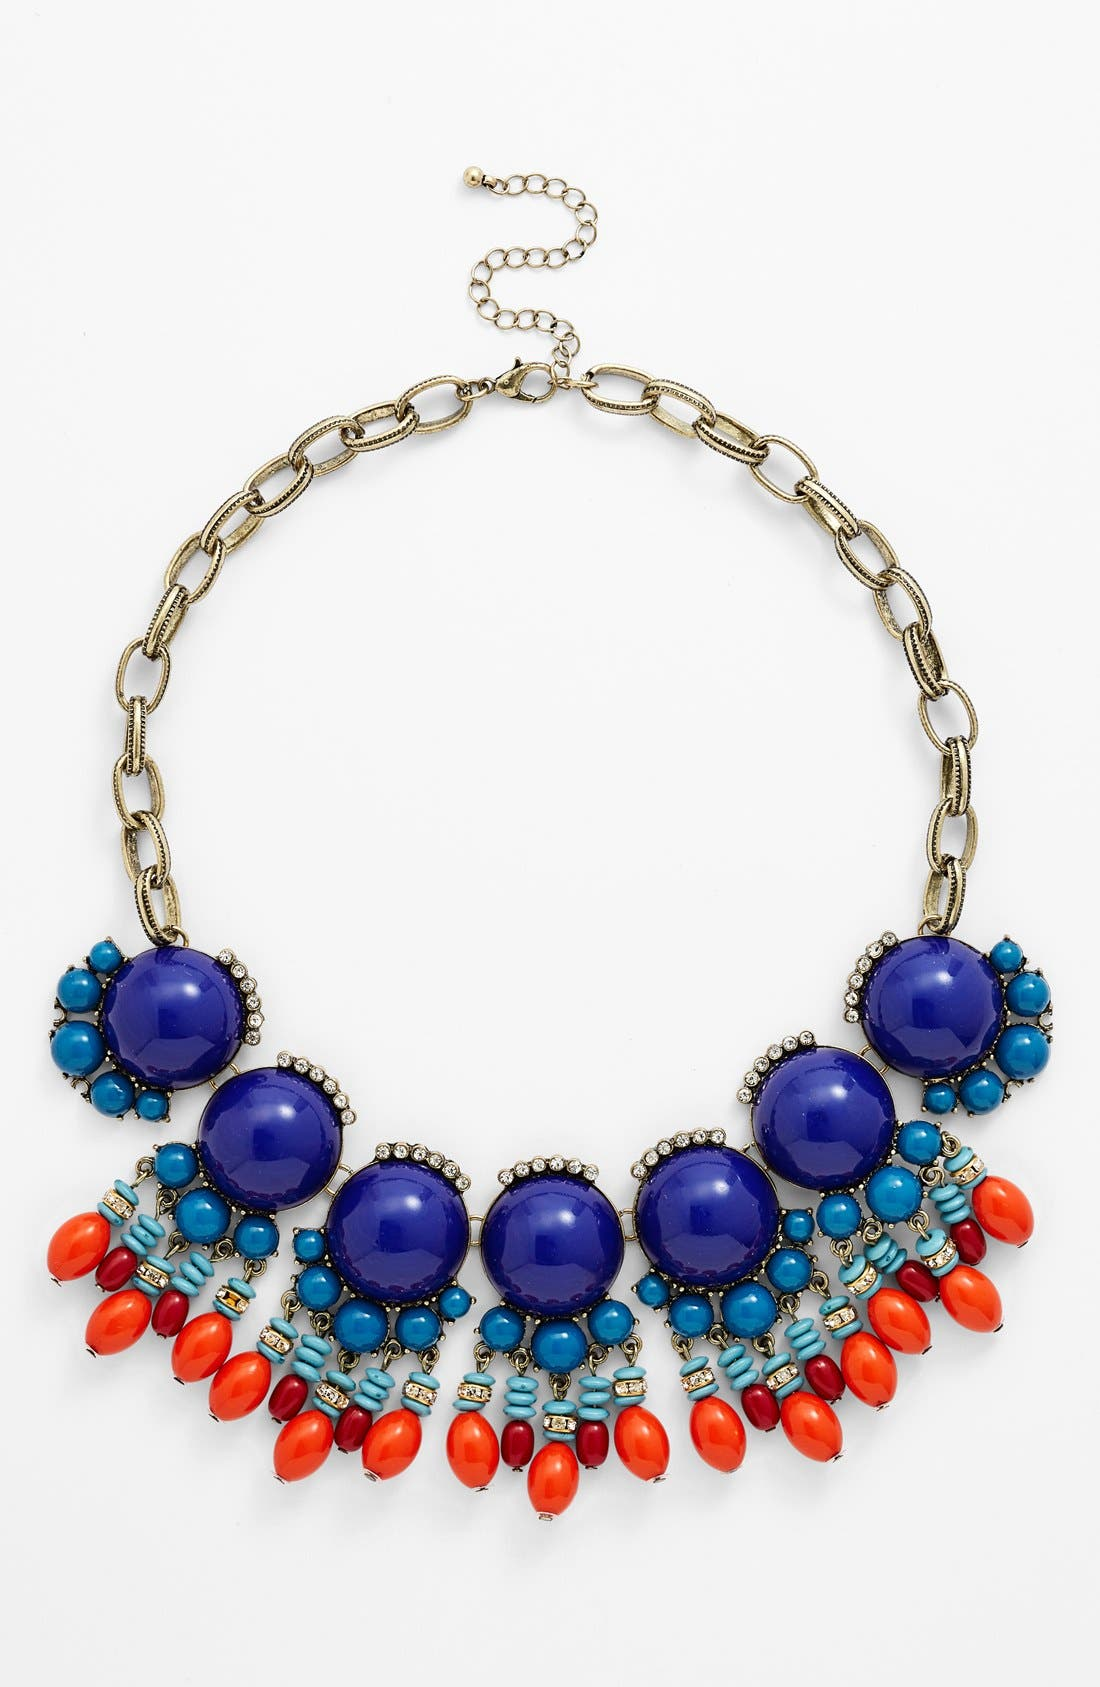 Alternate Image 1 Selected - Leith 'Boho' Beaded Statement Necklace